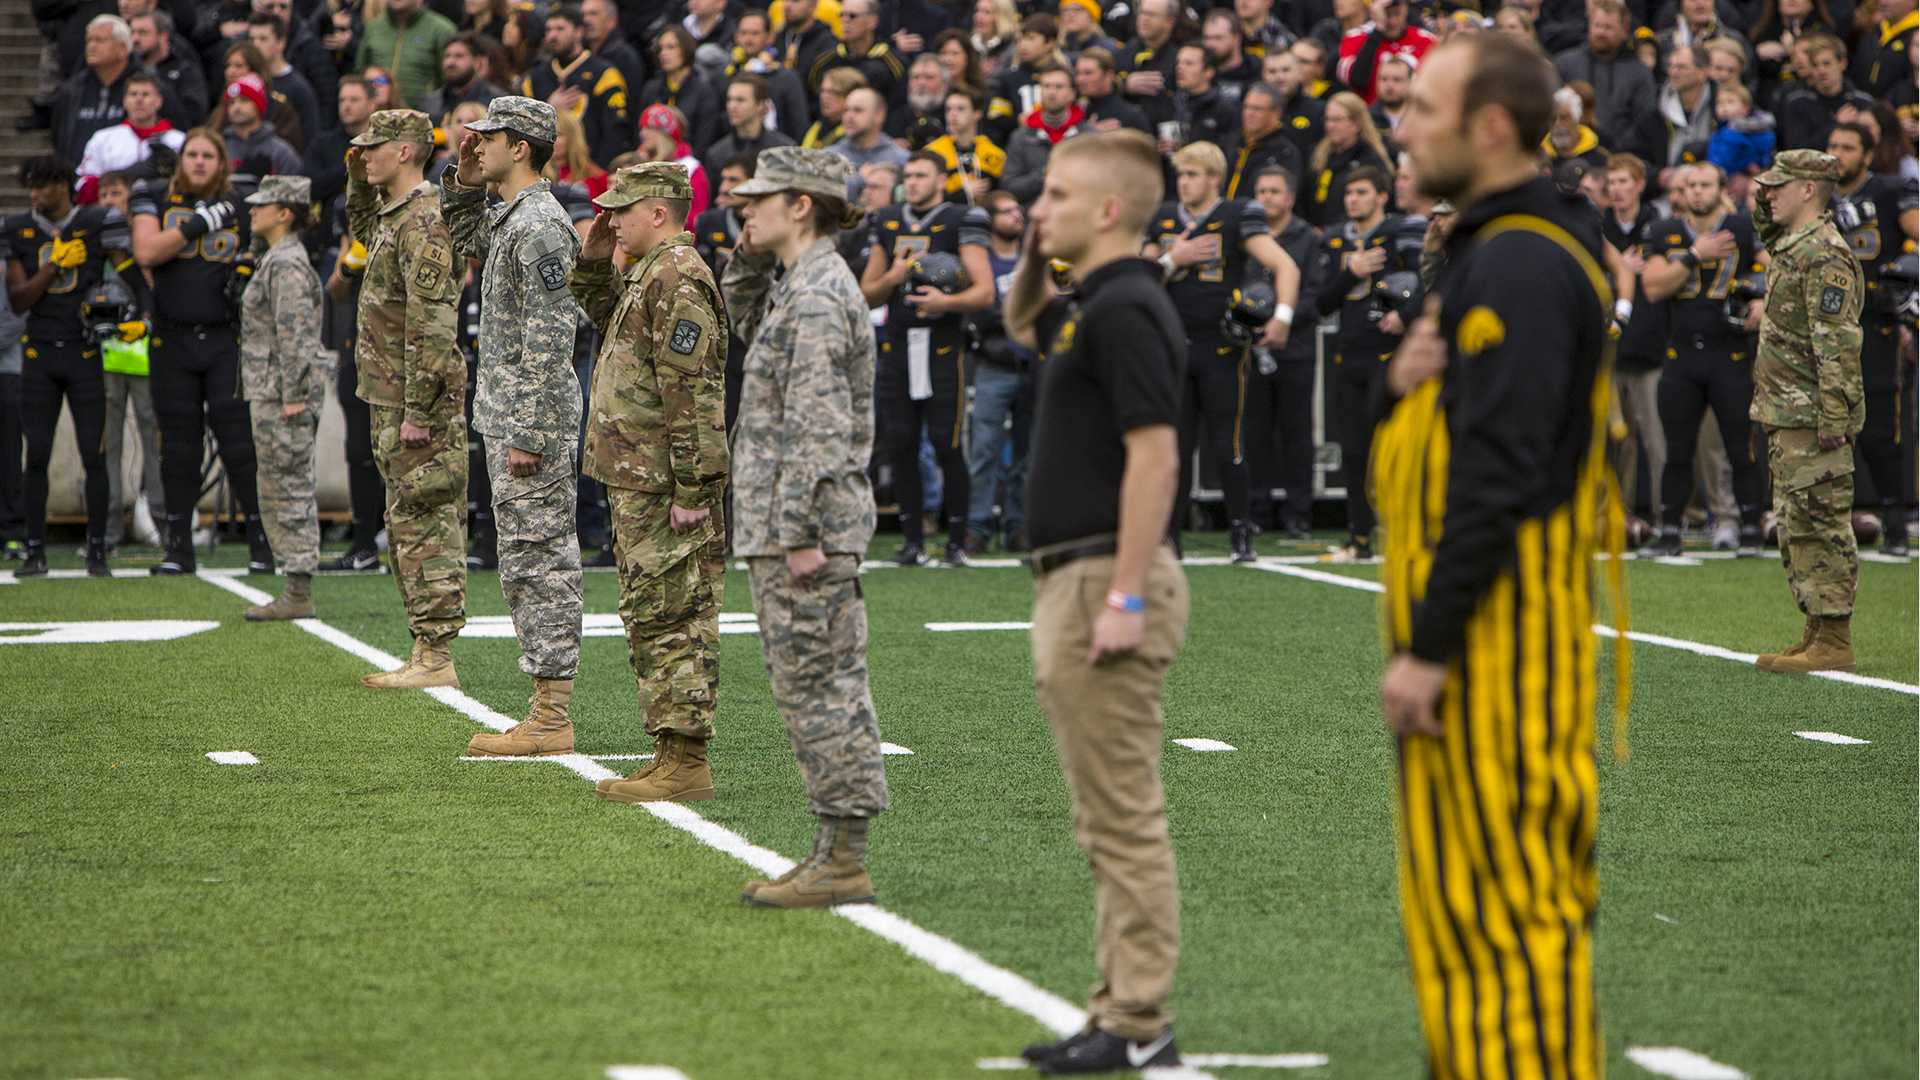 Veterans stand on the field during the national anthem before Iowa's game against Ohio State at Kinnick Stadium on Saturday, Nov. 4, 2017. The Hawkeyes defeated the Buckeyes 55 to 24. (Nick Rohlman/The Daily Iowan)